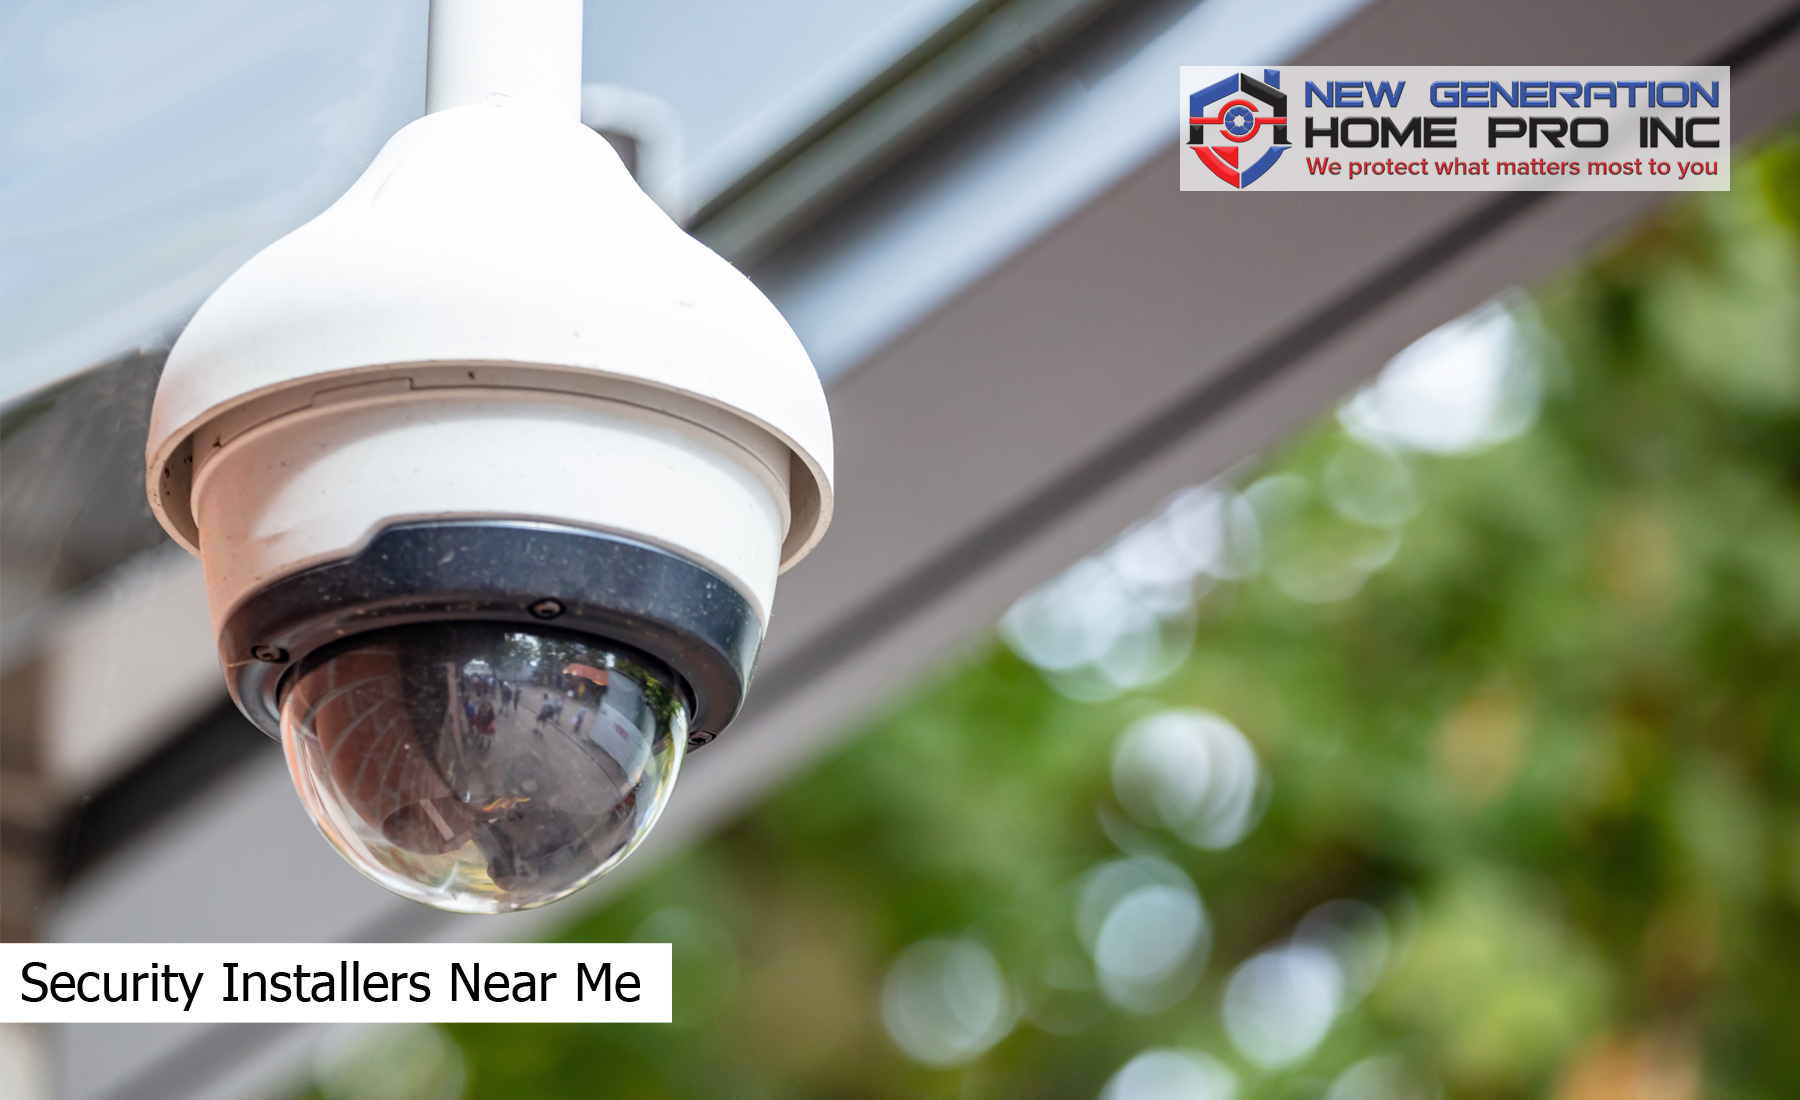 Security installers near me, Smart Home, Types of home automation, Home automation pros, Home automation professionals, Advantages of home automation, Building Automation, Domotics, Smart House, Home Automation System, Home Security, Access Control, Alarm Systems, Lighting control system, HVAC, Voice control, Smart Home Hub, Home automation ideas, Top Home automation companies in Texas, Best home automation around TX, Home automation ideas, Smart home automation, Home automation companies, Home security installers near me, Smart home automation ideas, Great home automation ideas, Homepro security